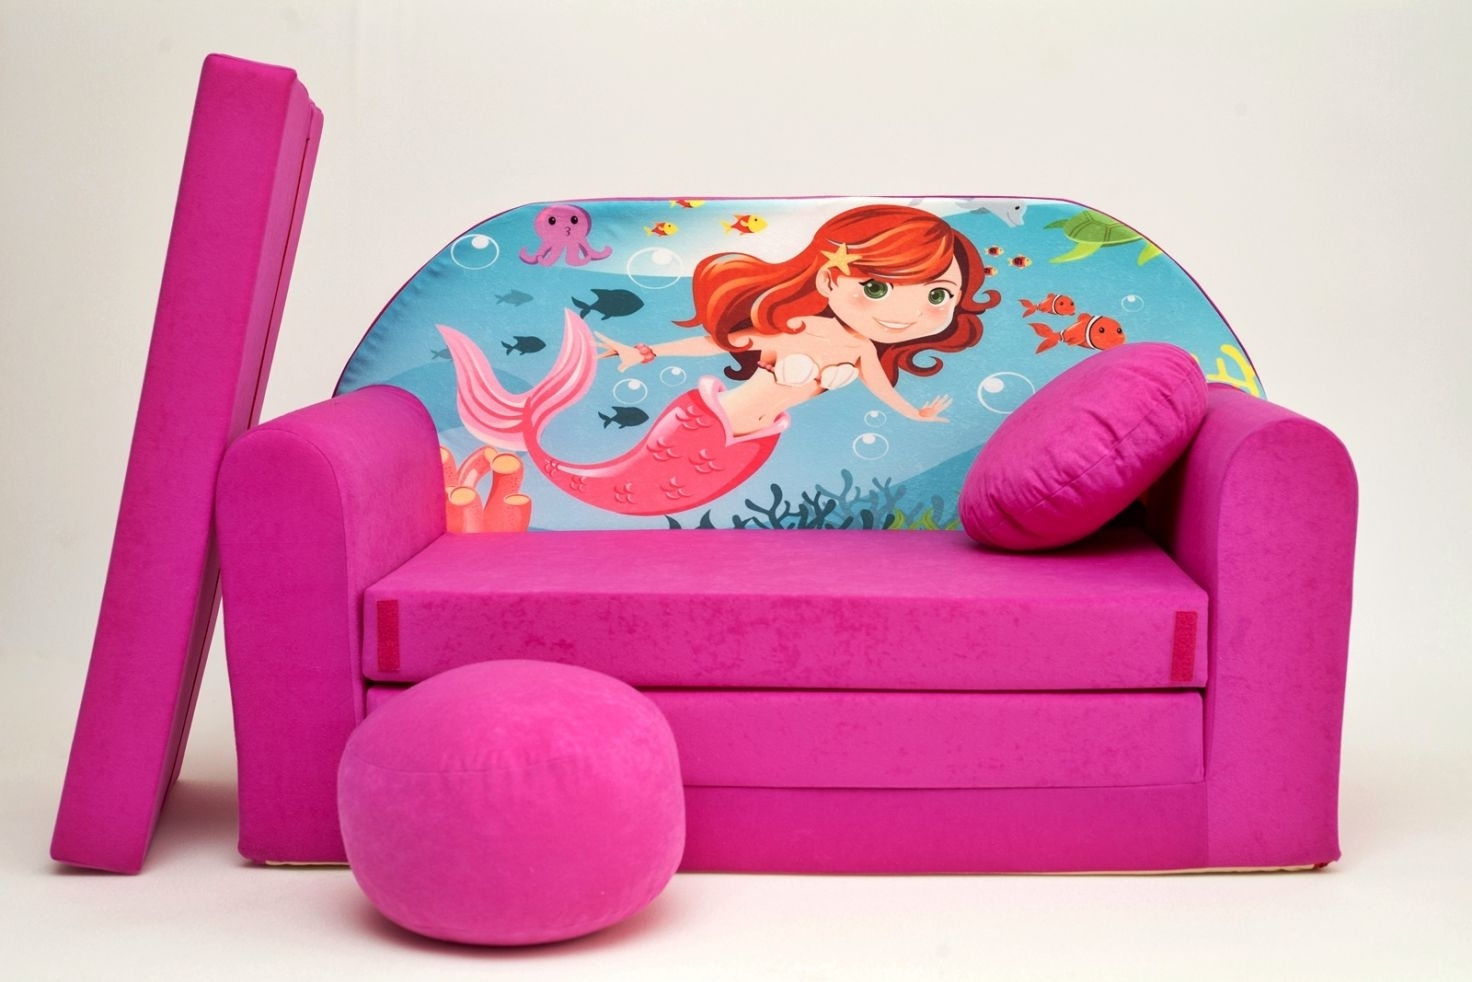 Childrens Sofas Throughout Well Known Baby Sofas Uk #3 Childrens Sofas 37 With Childrens Sofas (View 14 of 20)